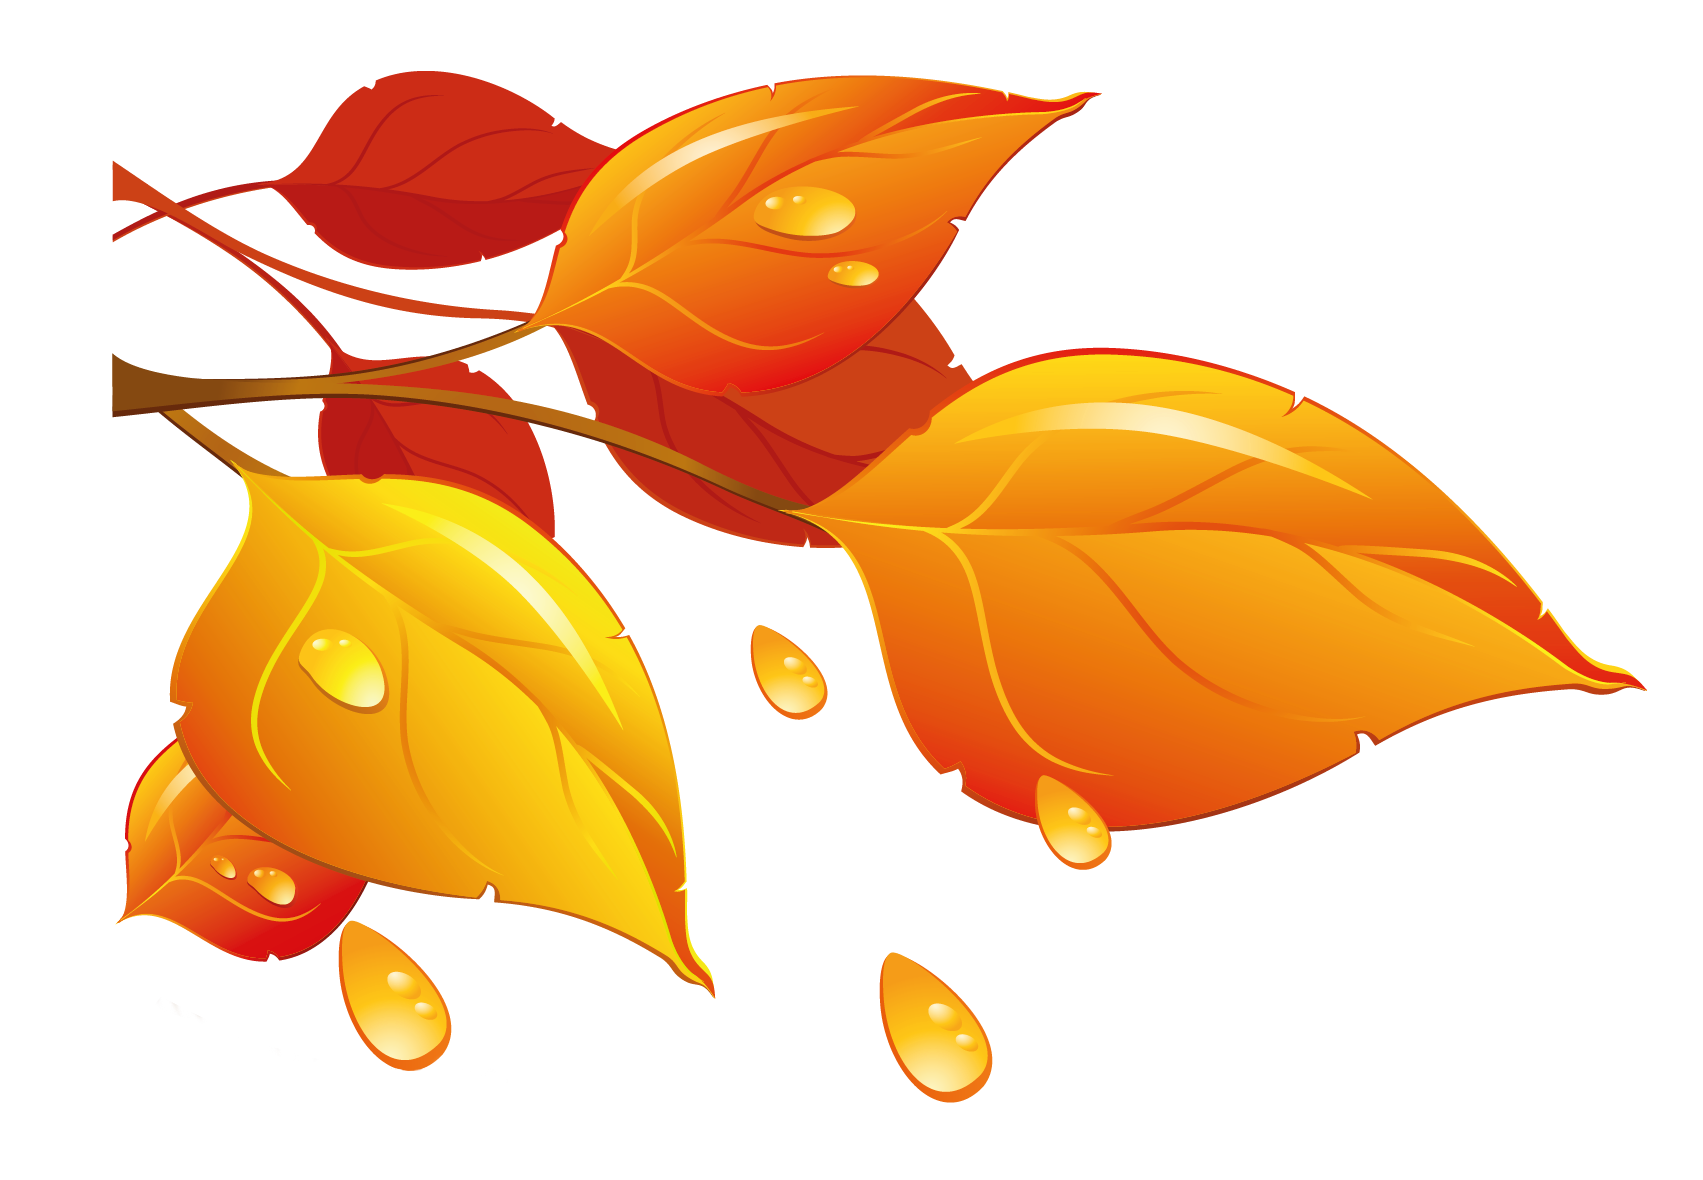 Clipart fall here. Transparent autumn leaves png